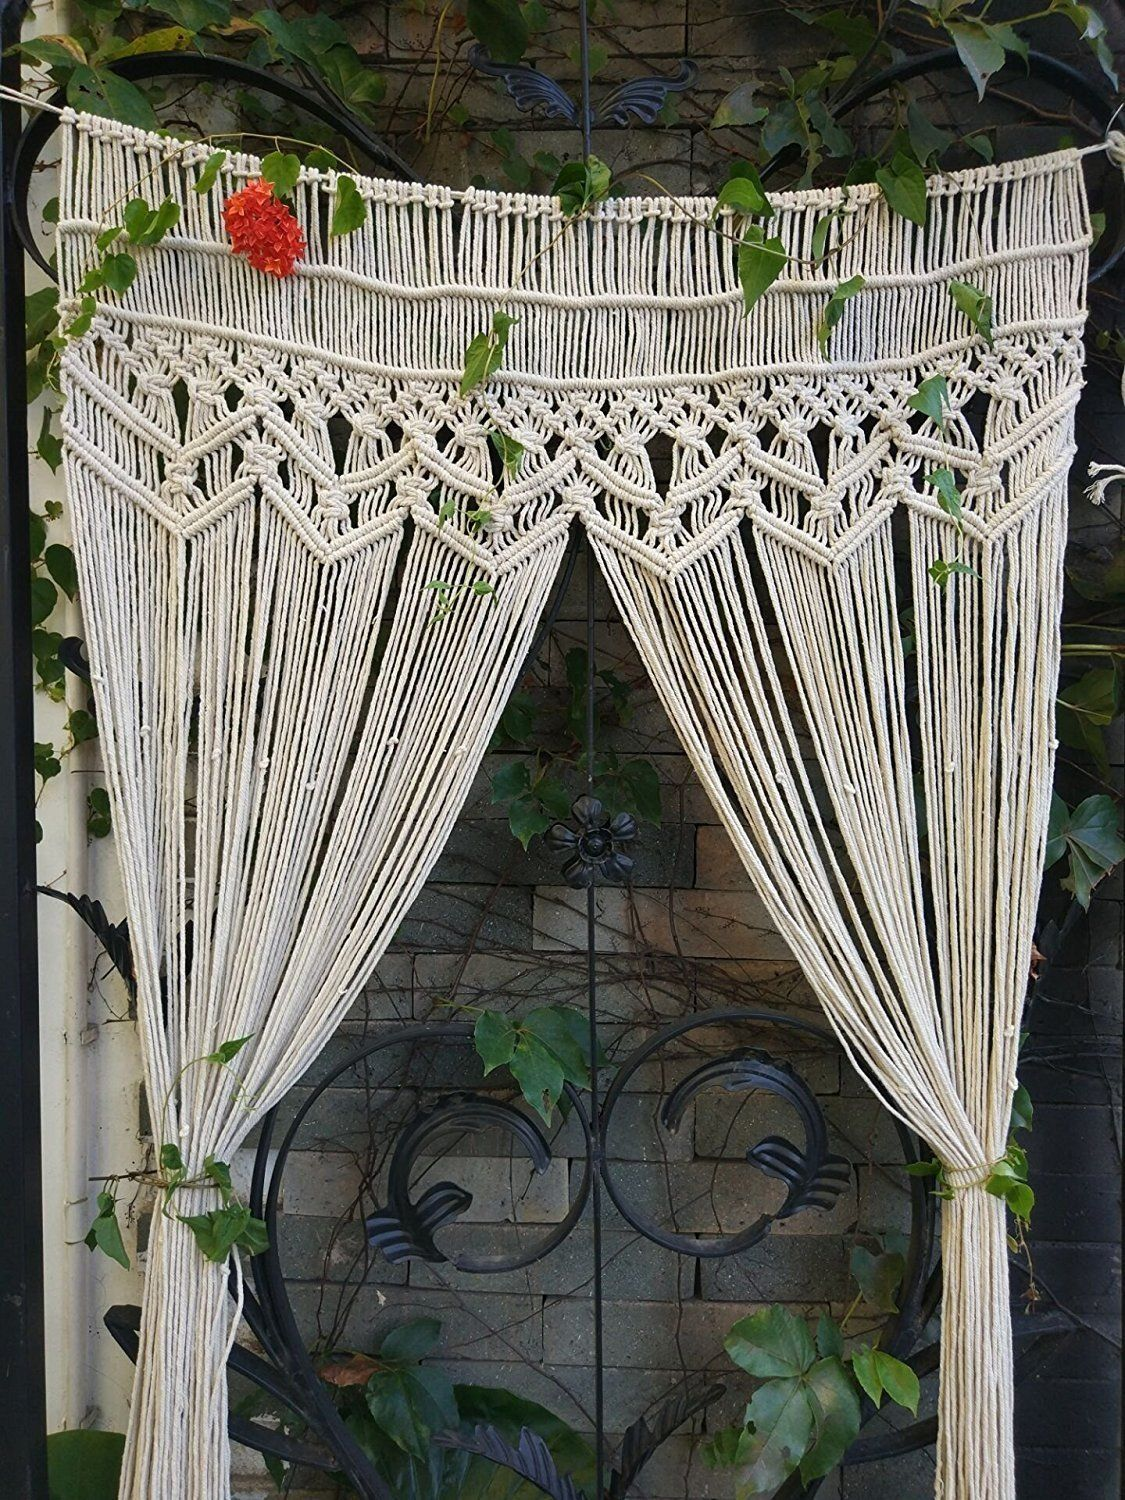 Handmade Macrame Wall Hanging Tapestry Macrame Door Hanging Room Divider Macrame Curtains Wi Room Divider Doors Hanging Room Dividers Macrame Wedding Backdrop